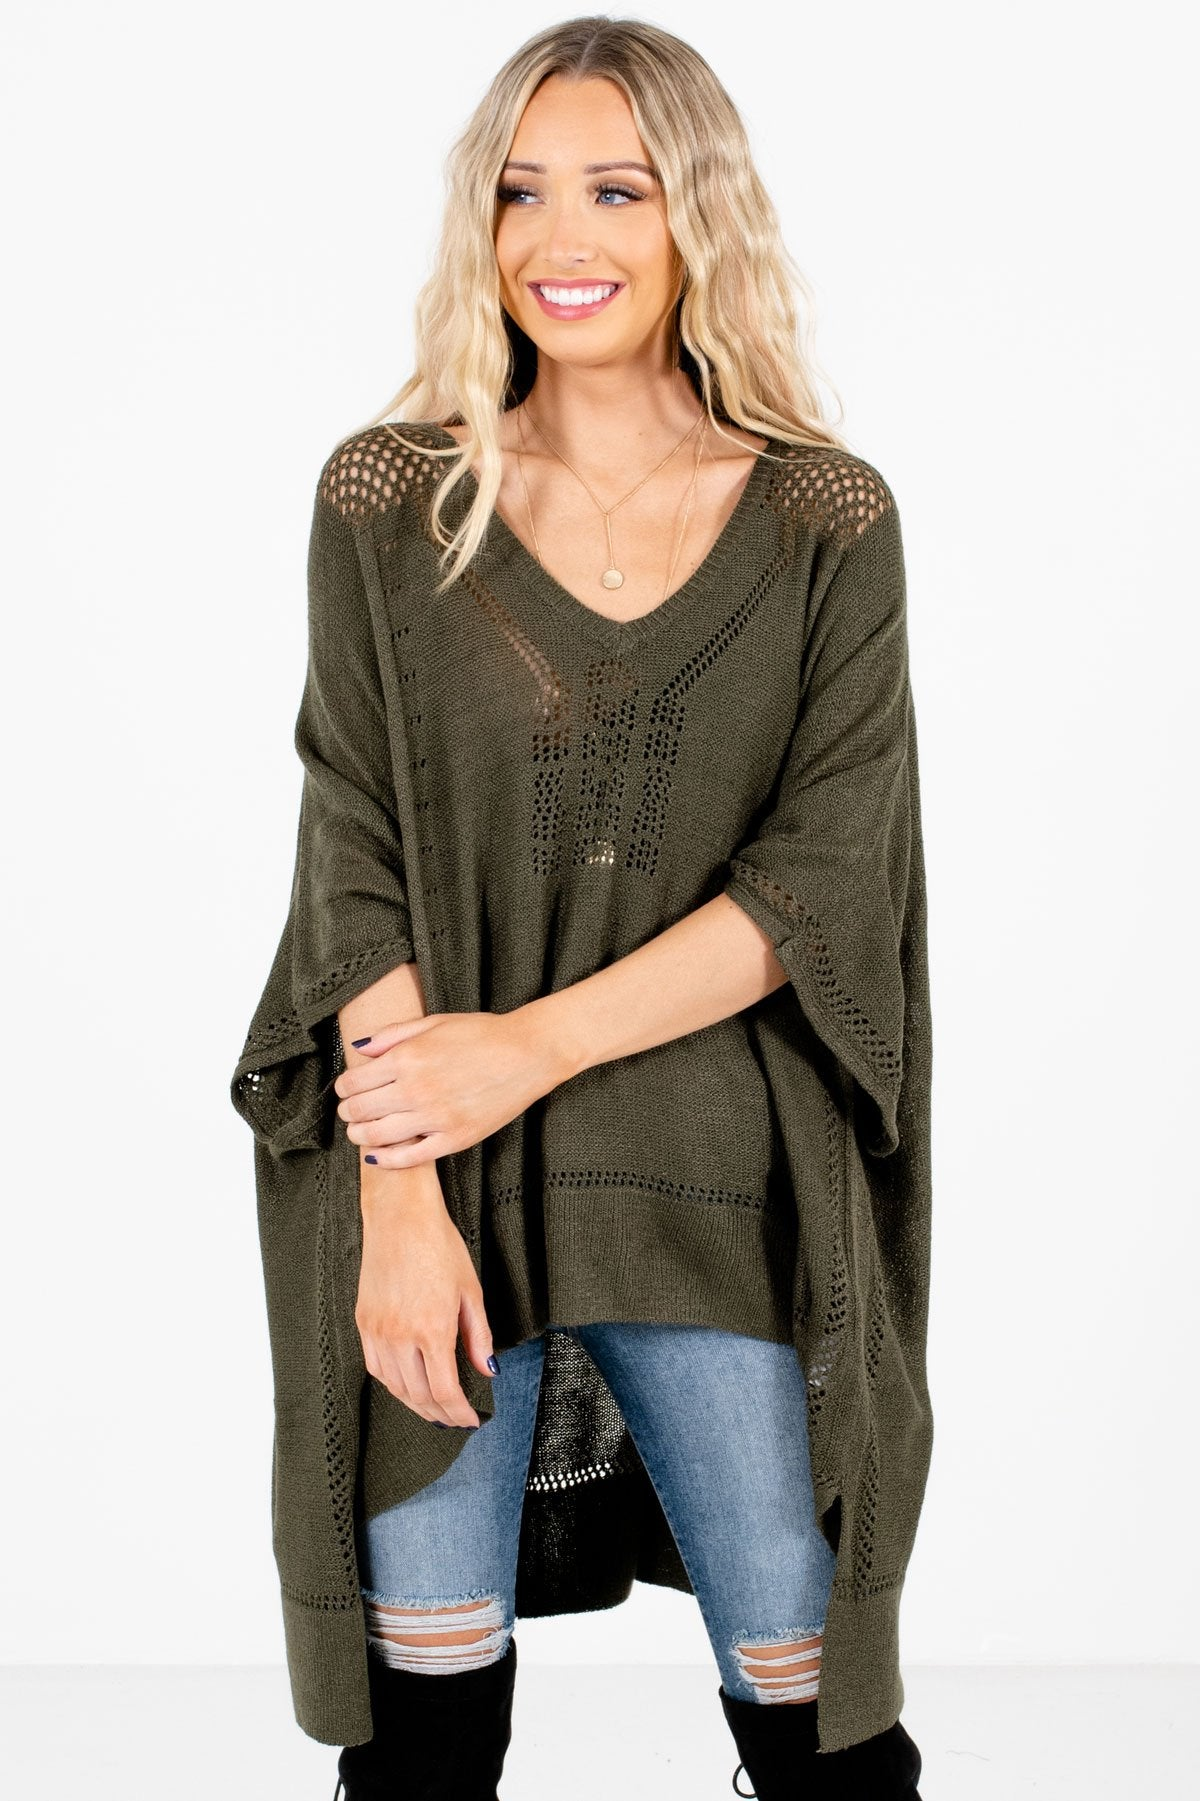 Olive Green Lightweight Knit Material Boutique Ponchos for Women